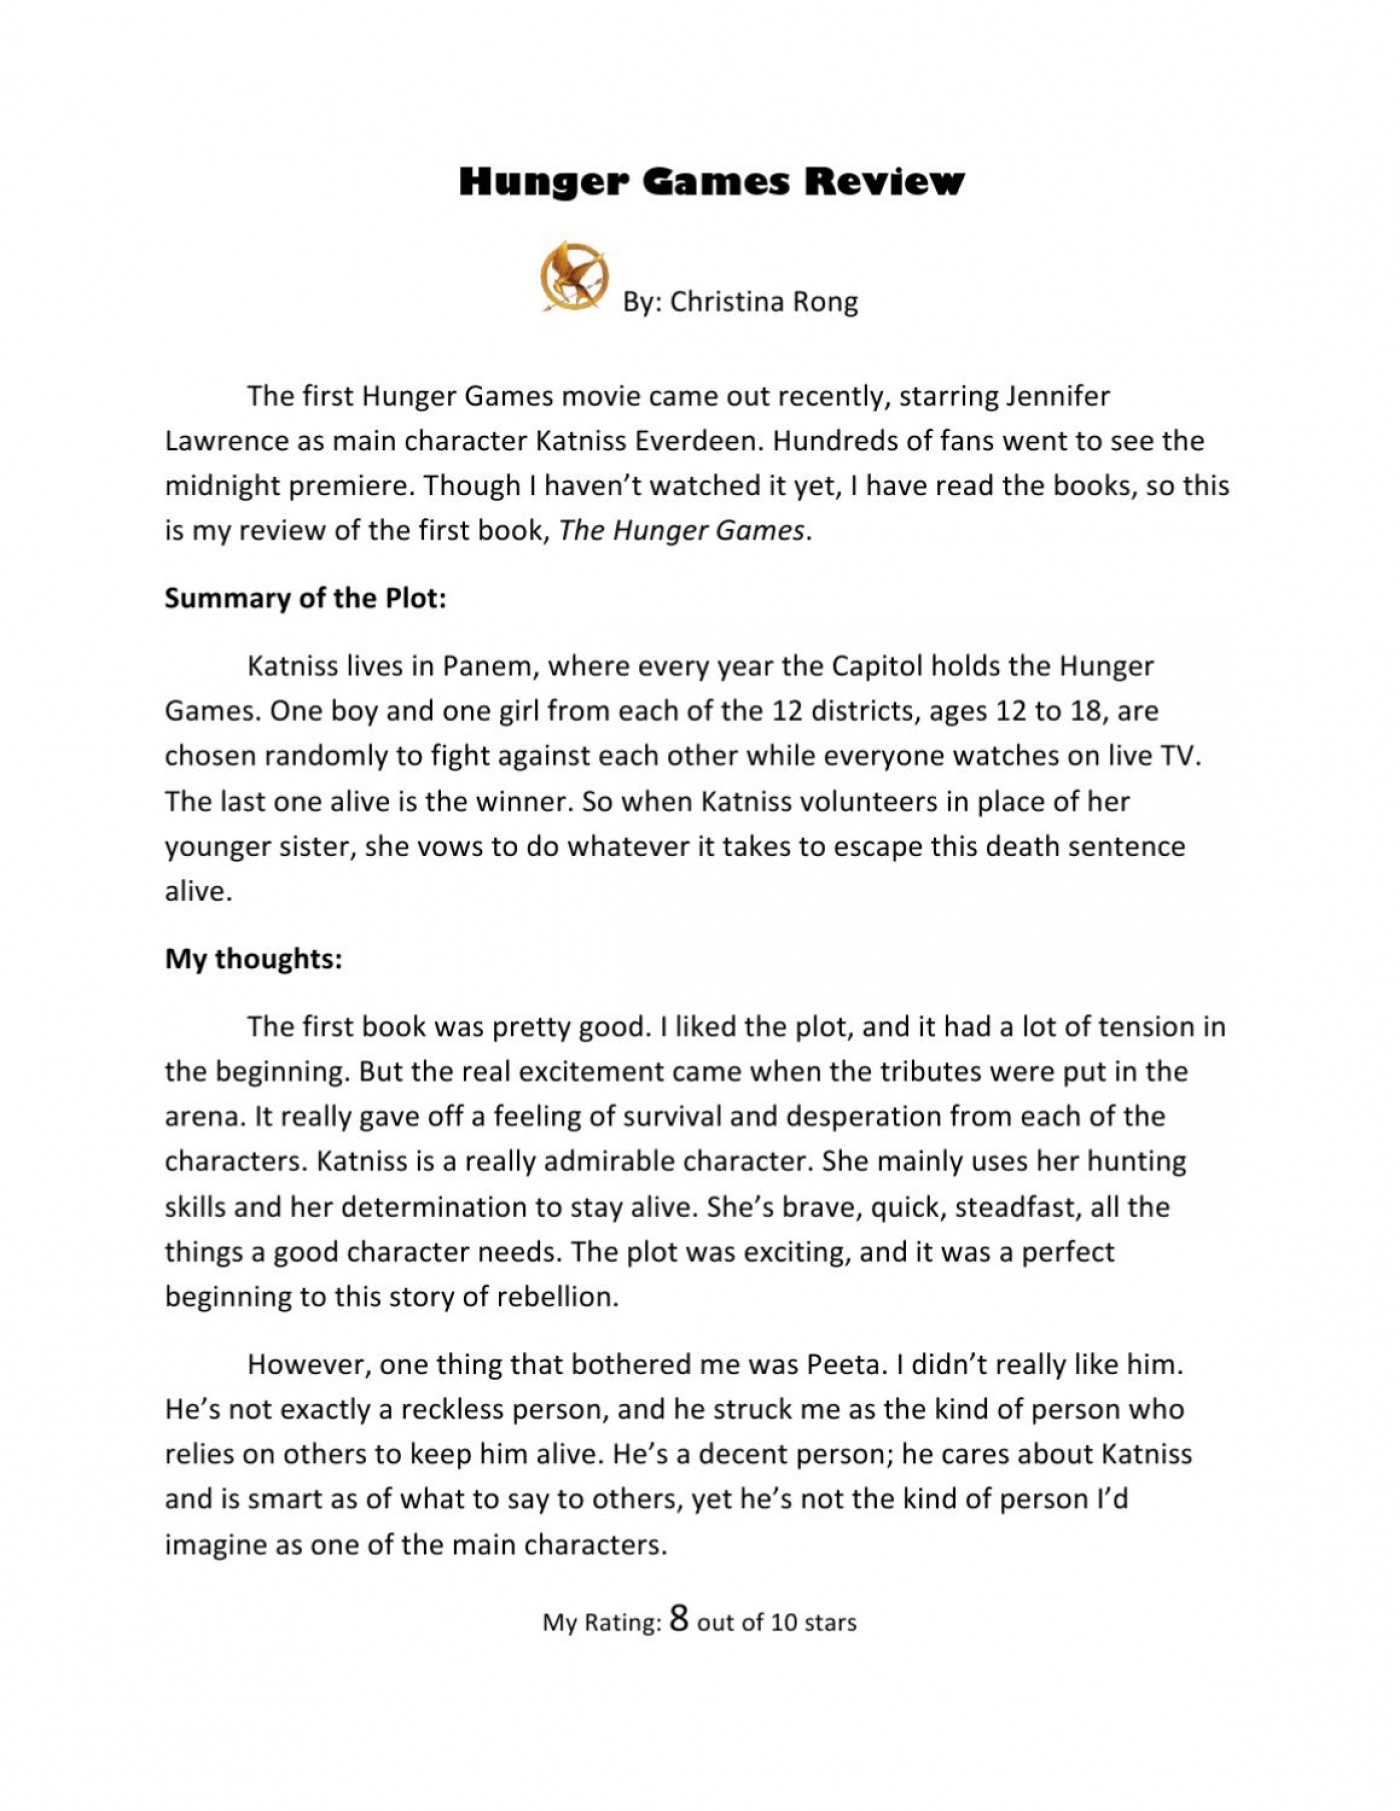 015 Essay Example Page 1 The Hunger Games Book Imposing Review 1400